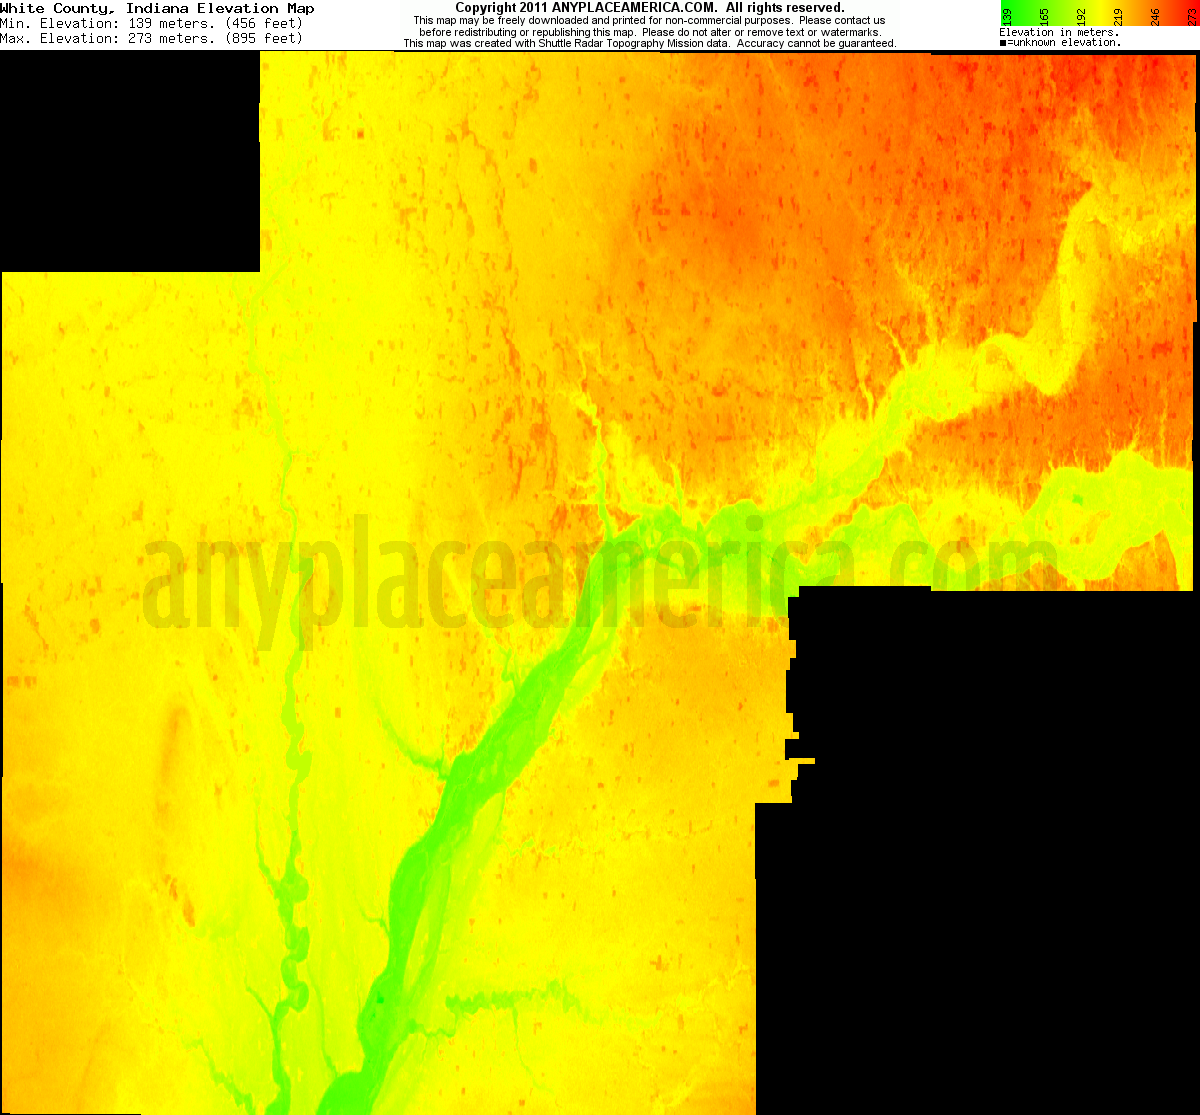 Indiana white county idaville - Download White County Elevation Map